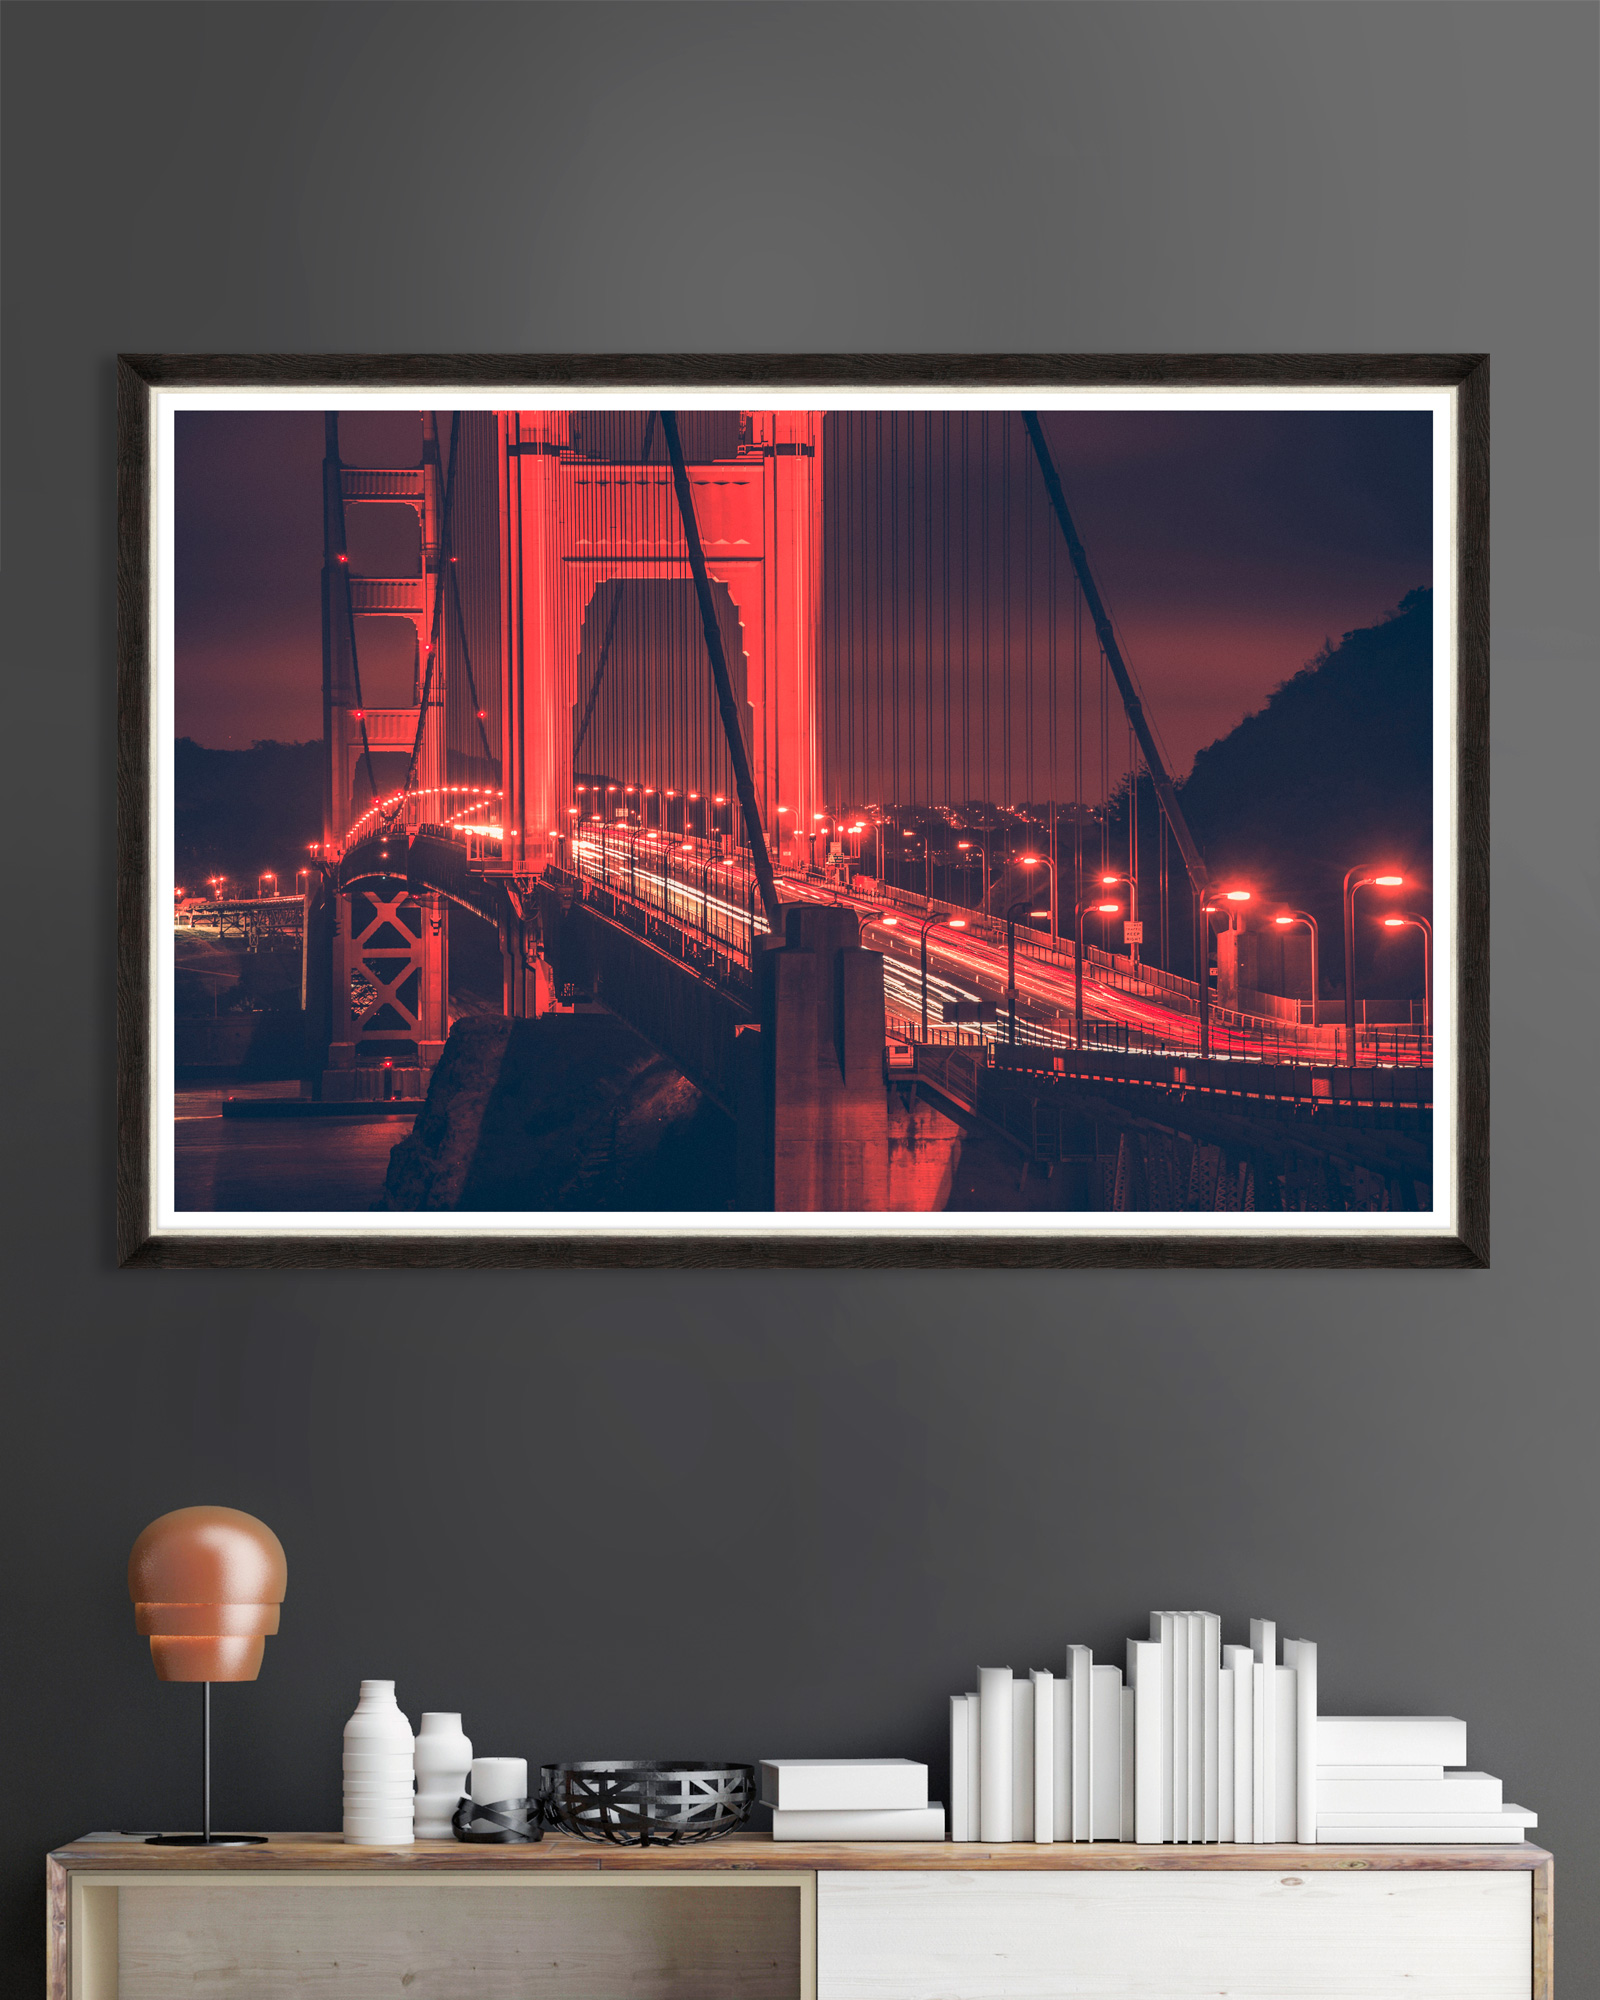 Tablou Framed Art Golden Gate Lights imagine